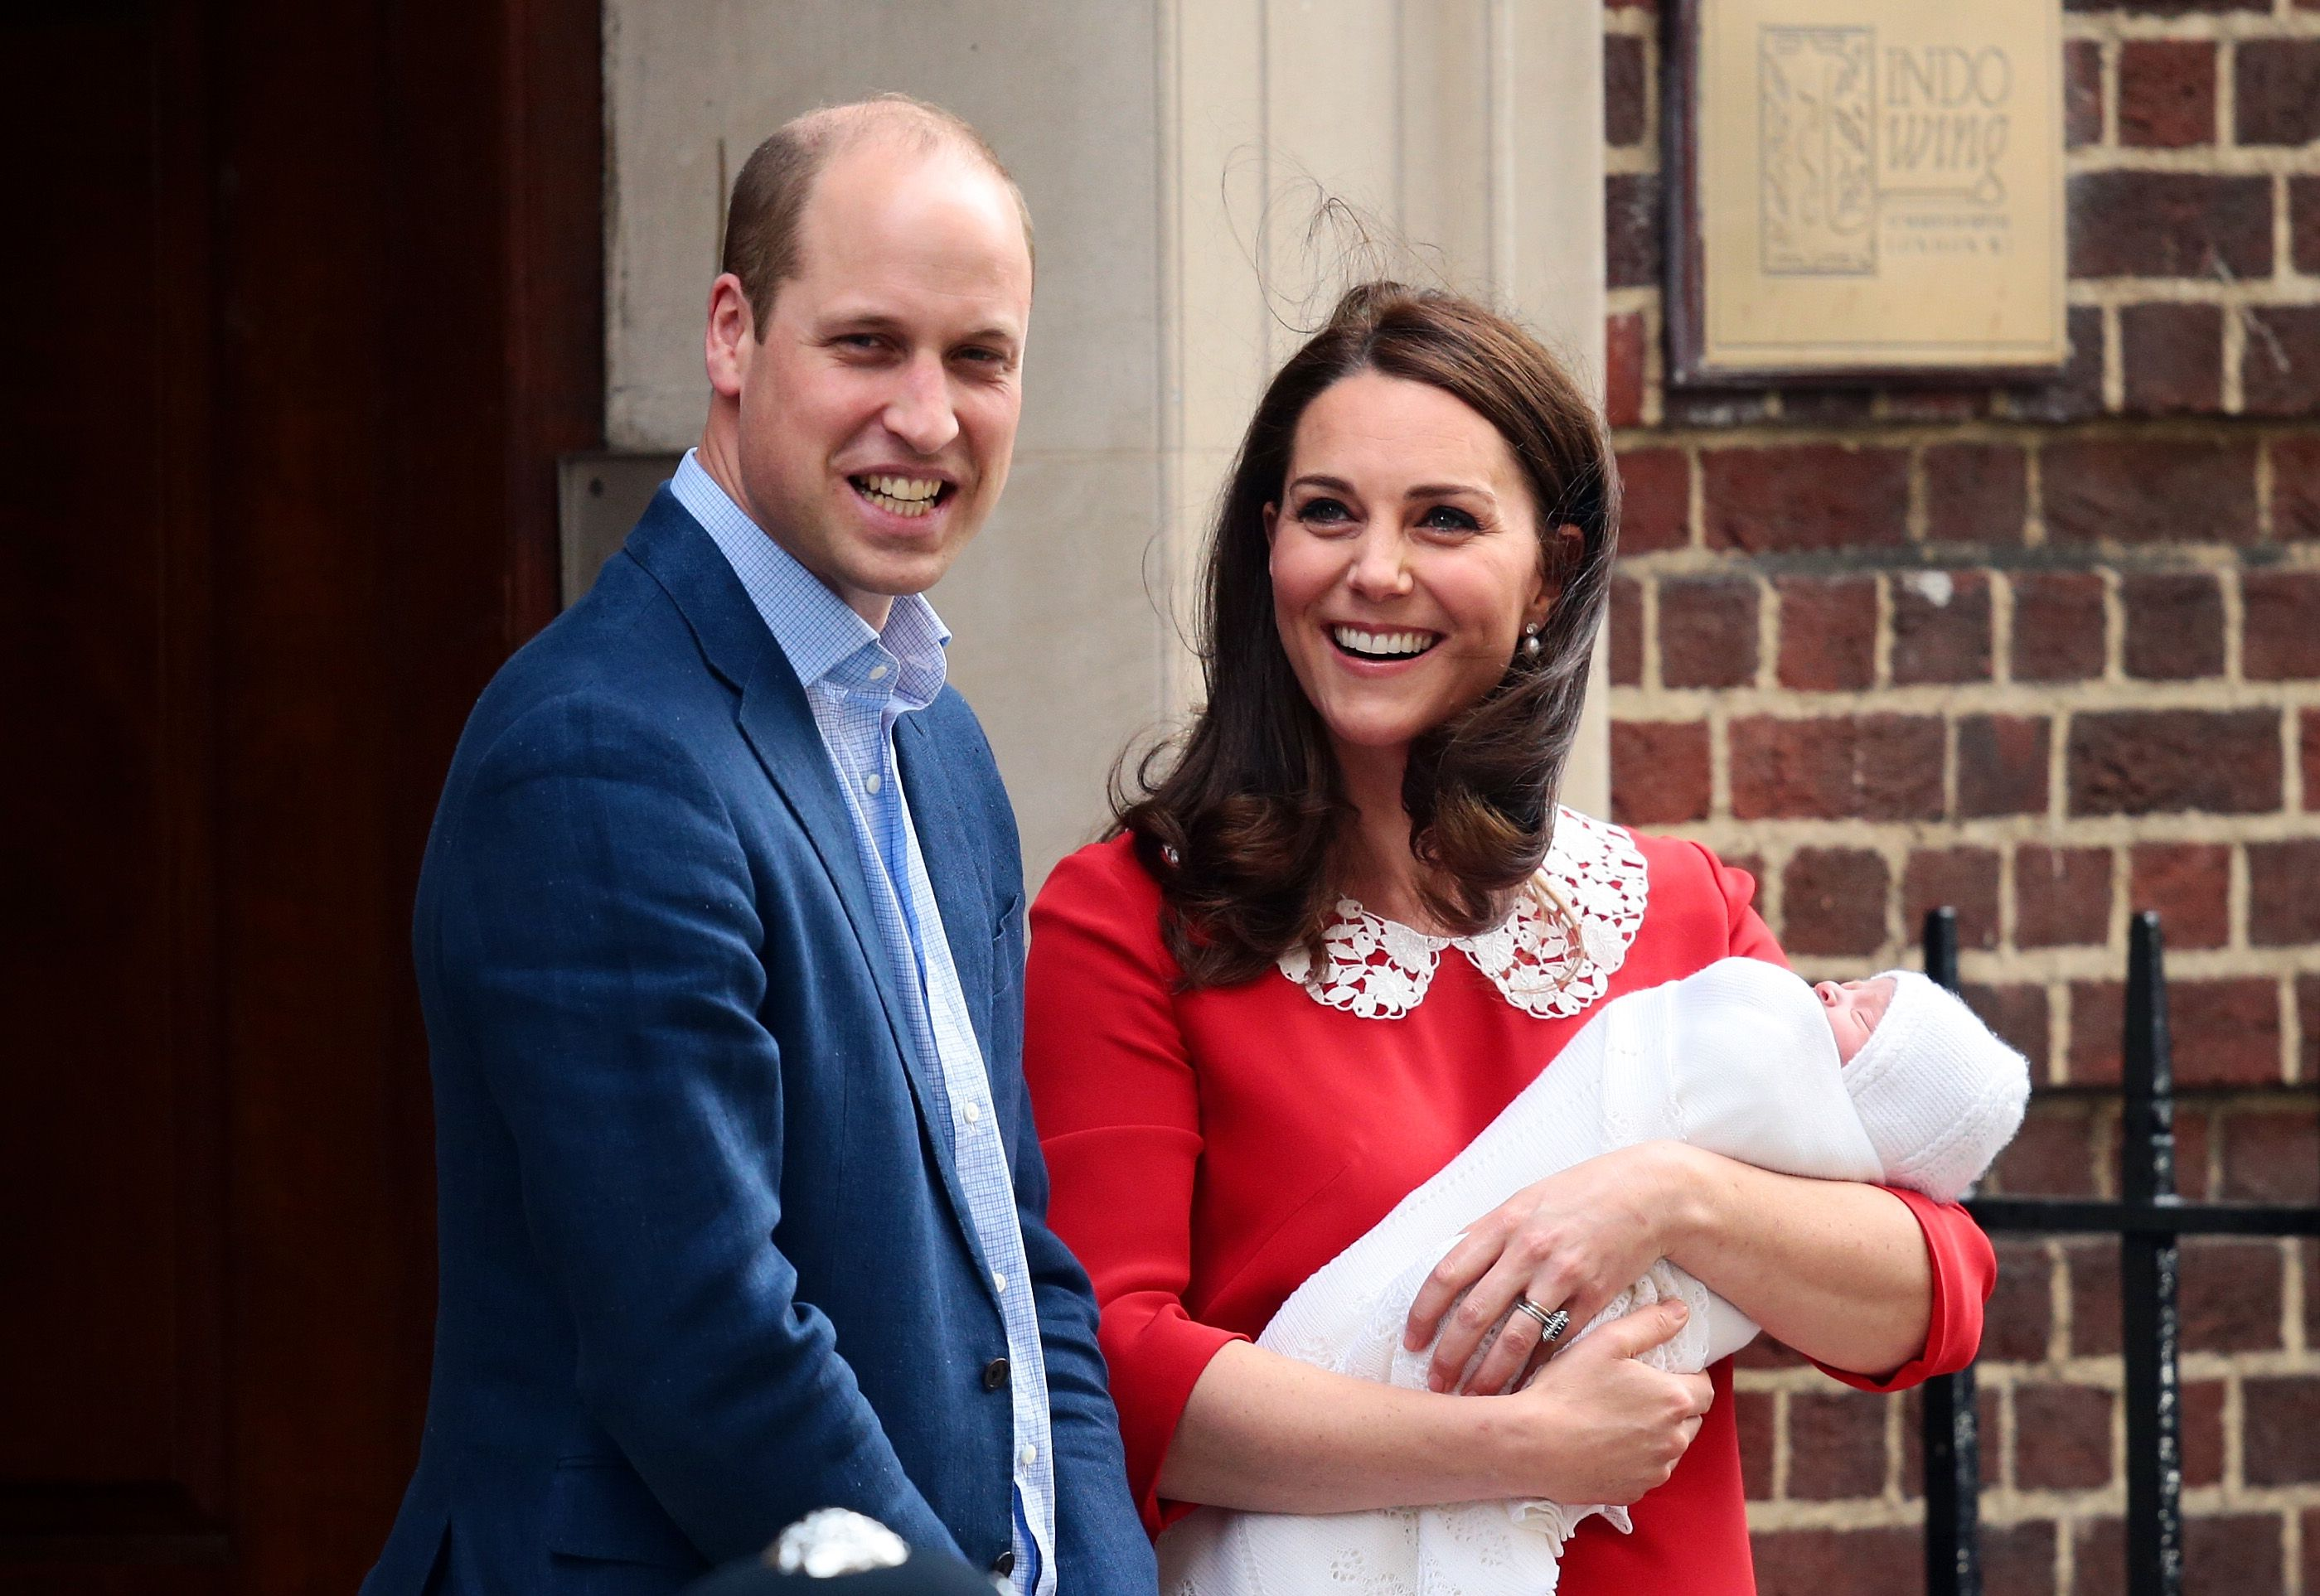 Any news on the new royal babys name yet